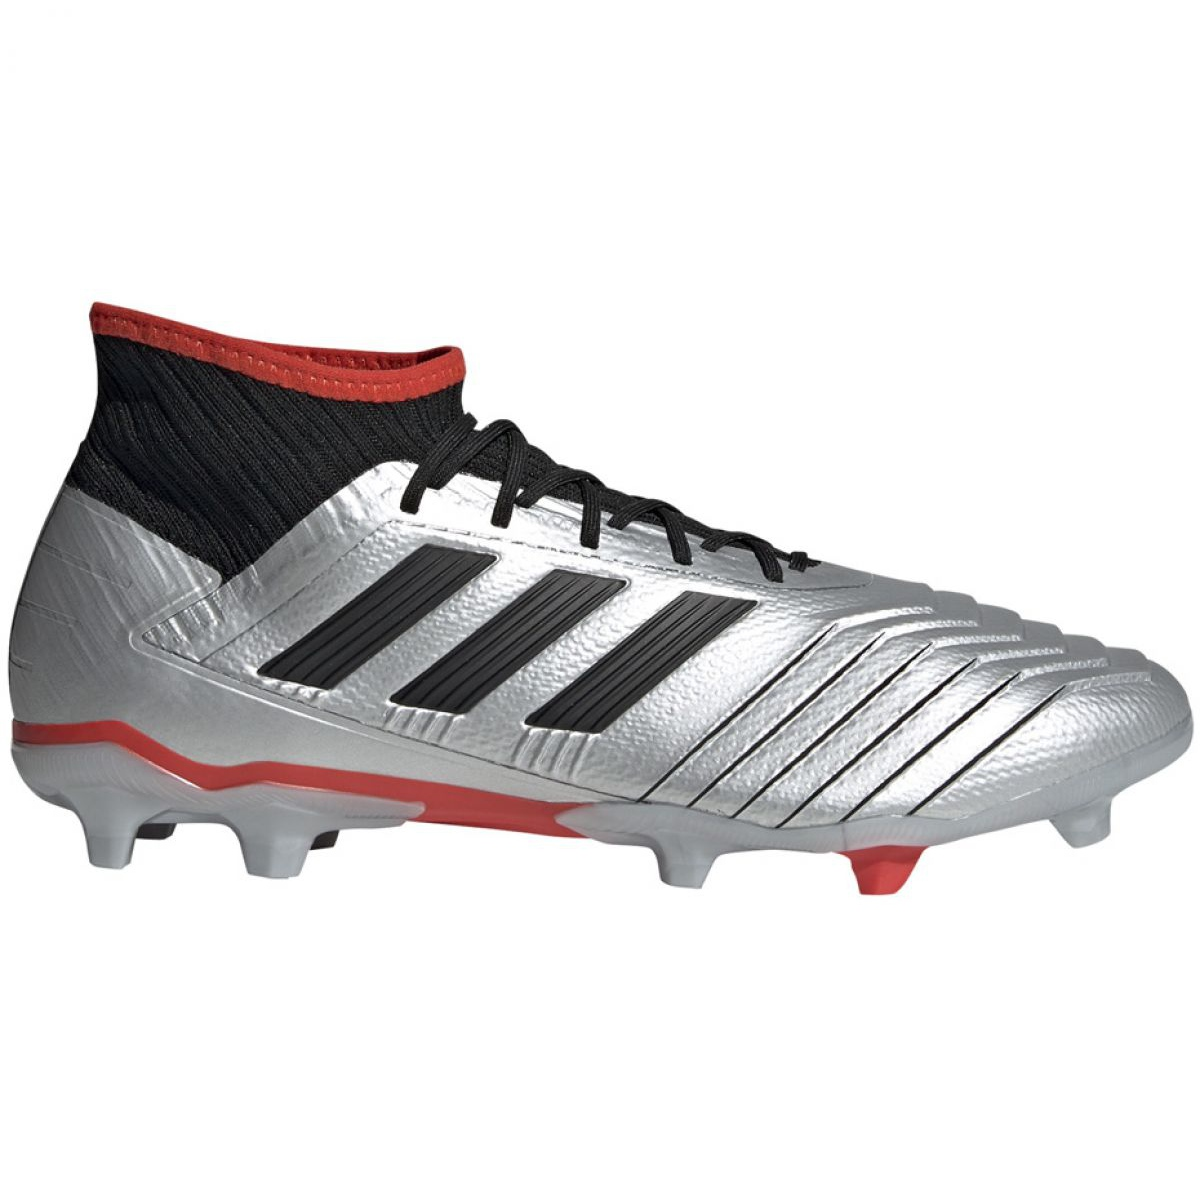 Details about Football boots adidas Predator 19.2 Fg M F35601 gray silver grey